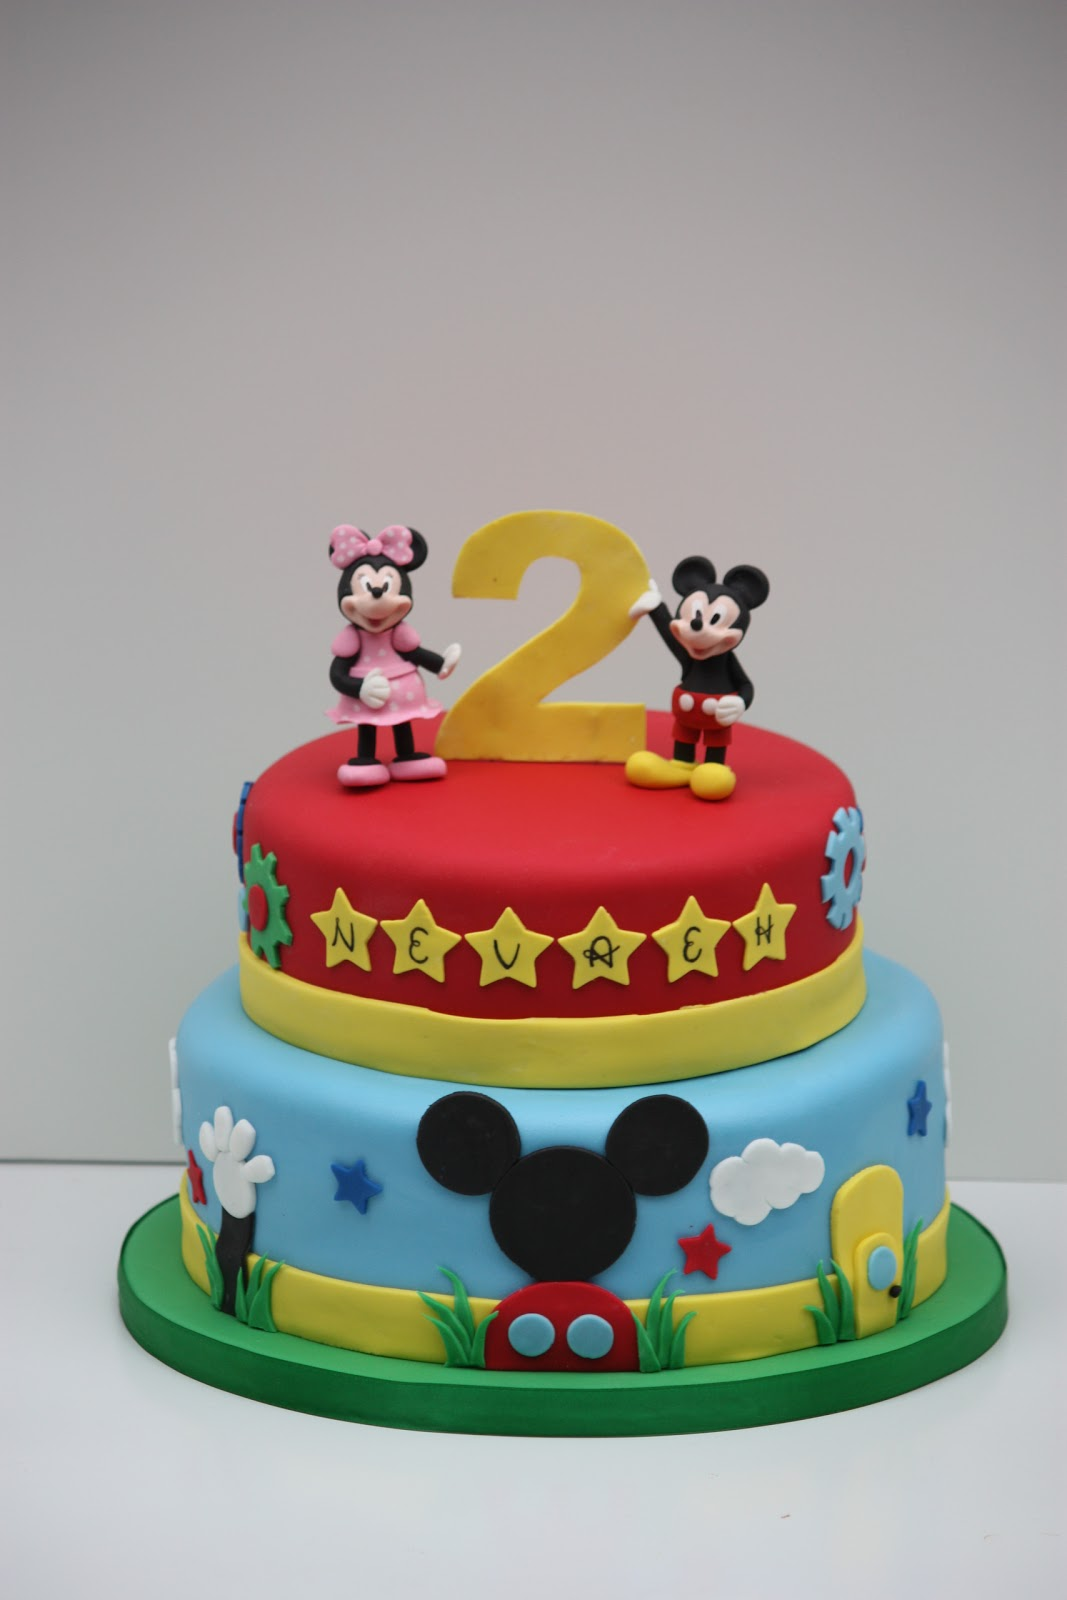 Connu Whimsical by Design: Mickey Mouse Clubhouse Cake AH49